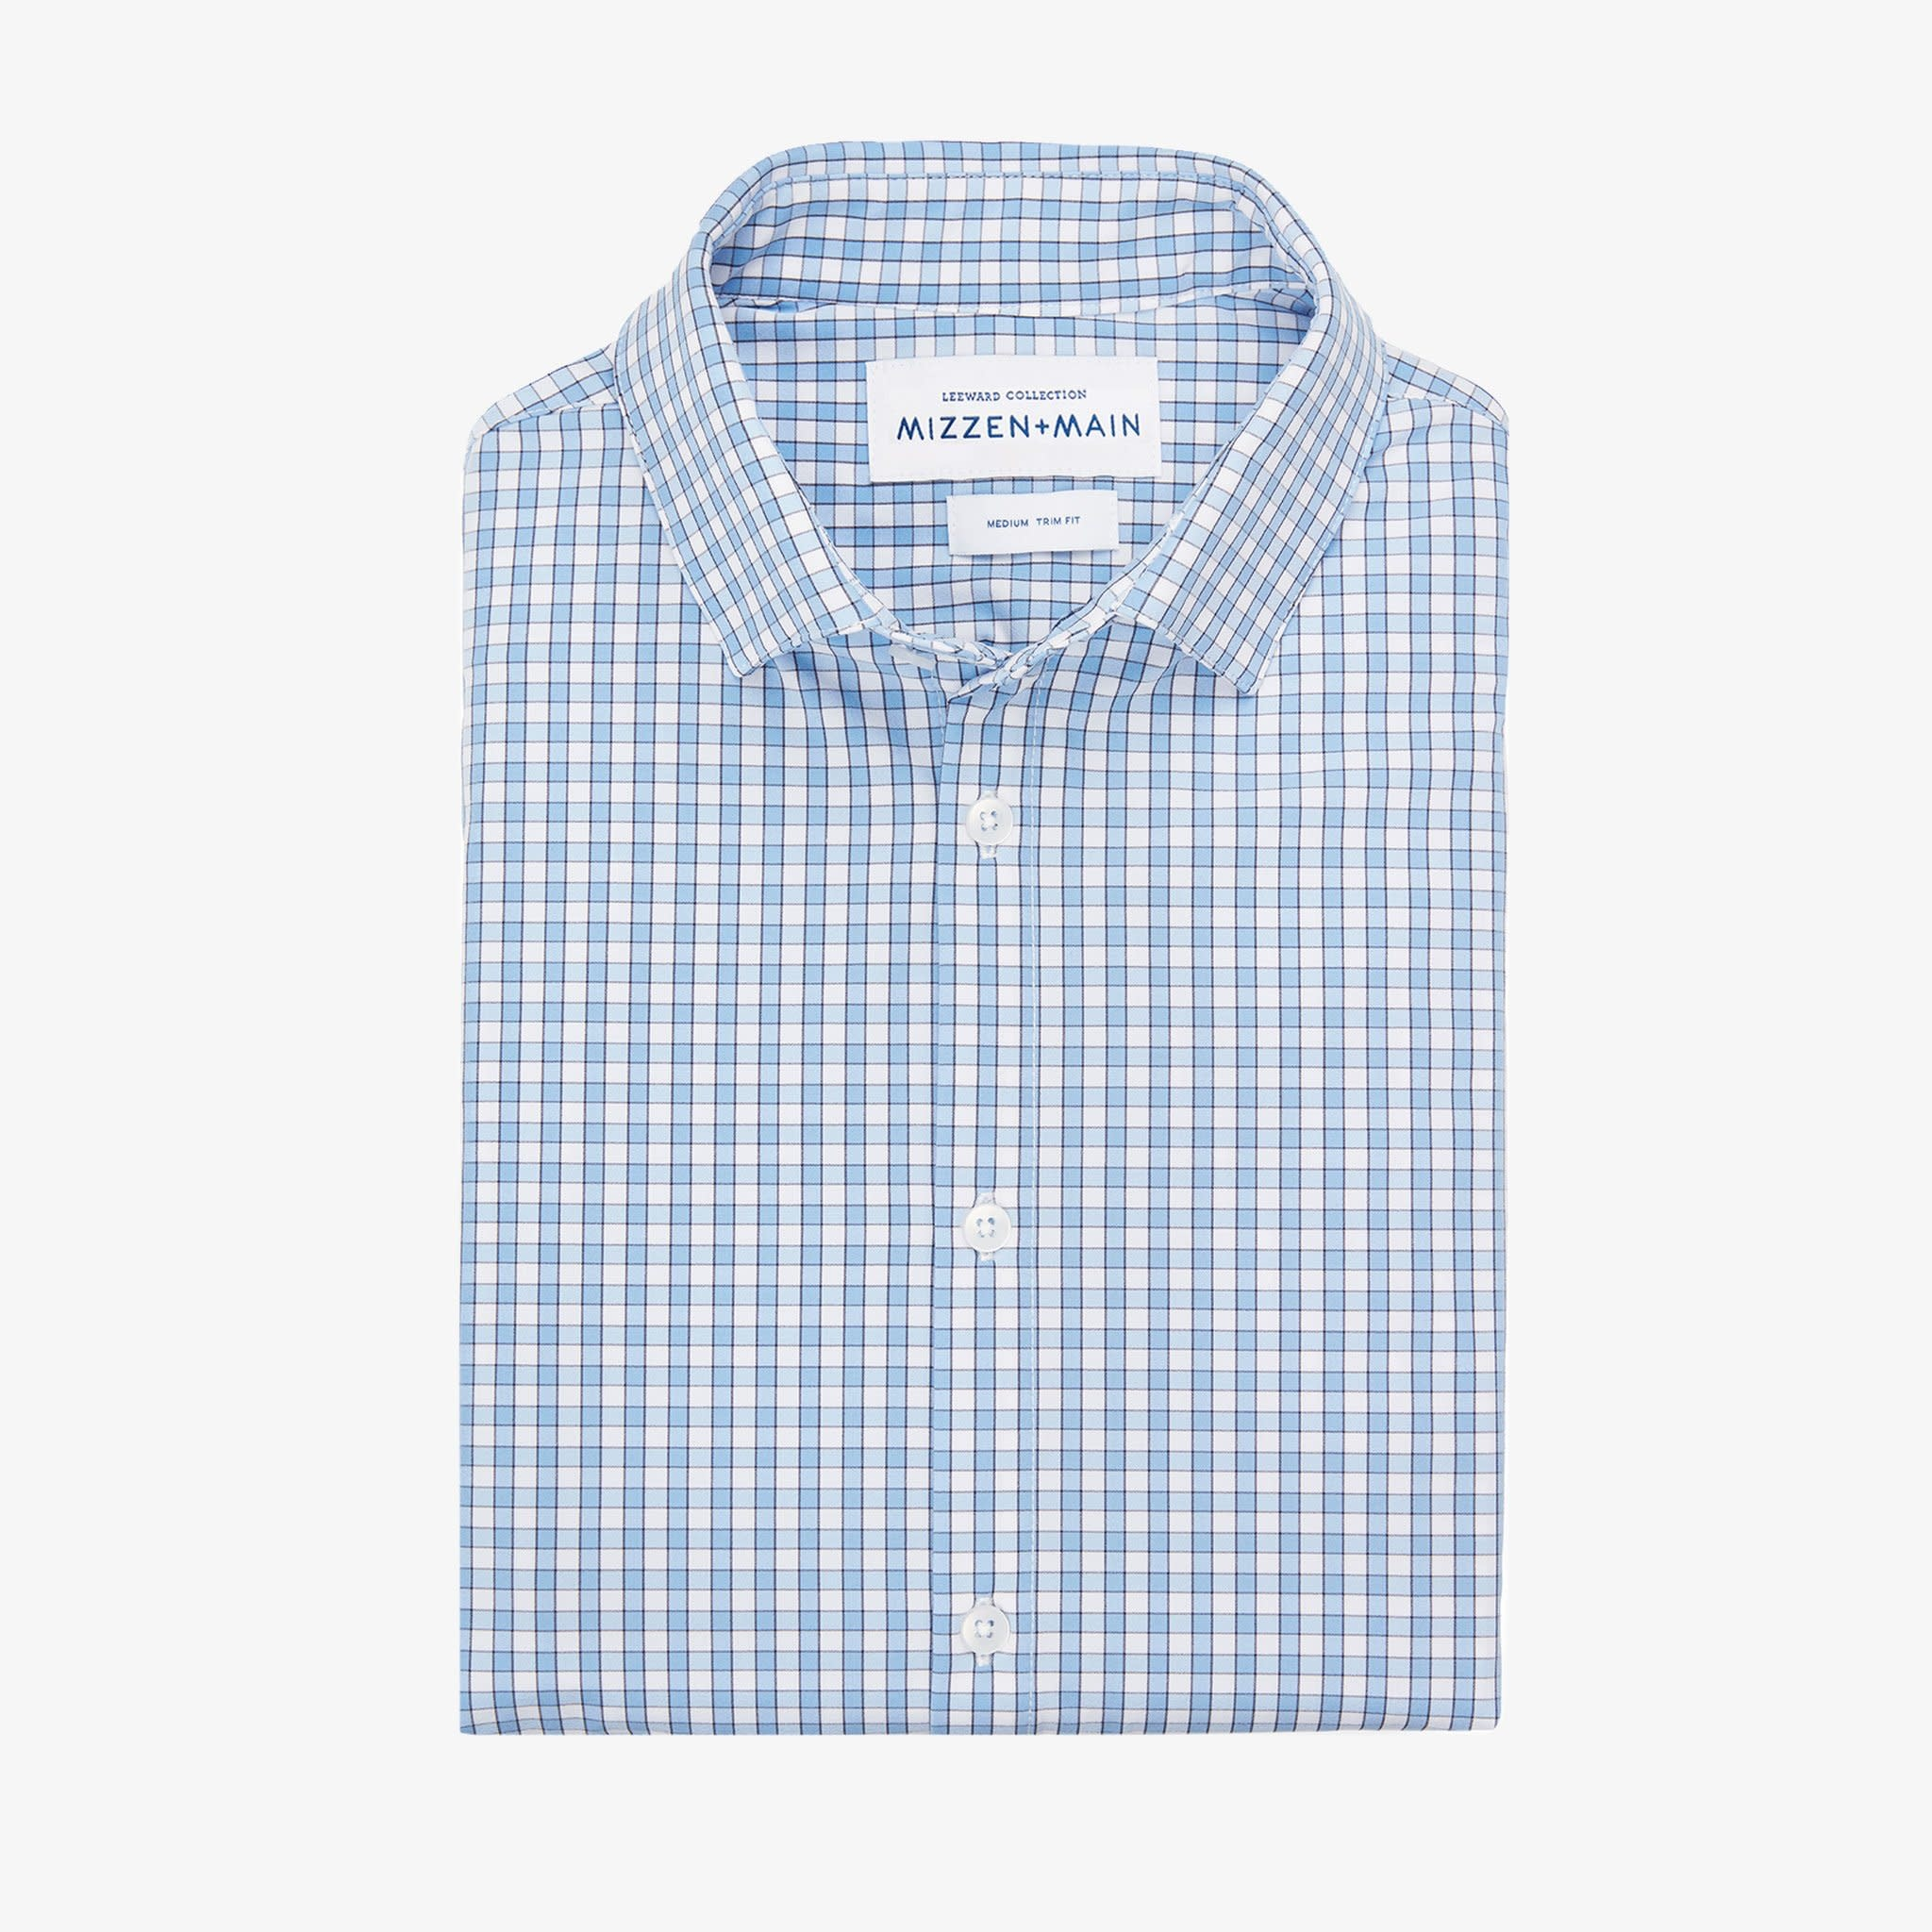 Mizzen+Main MM - Performance Dress Shirt Alexander